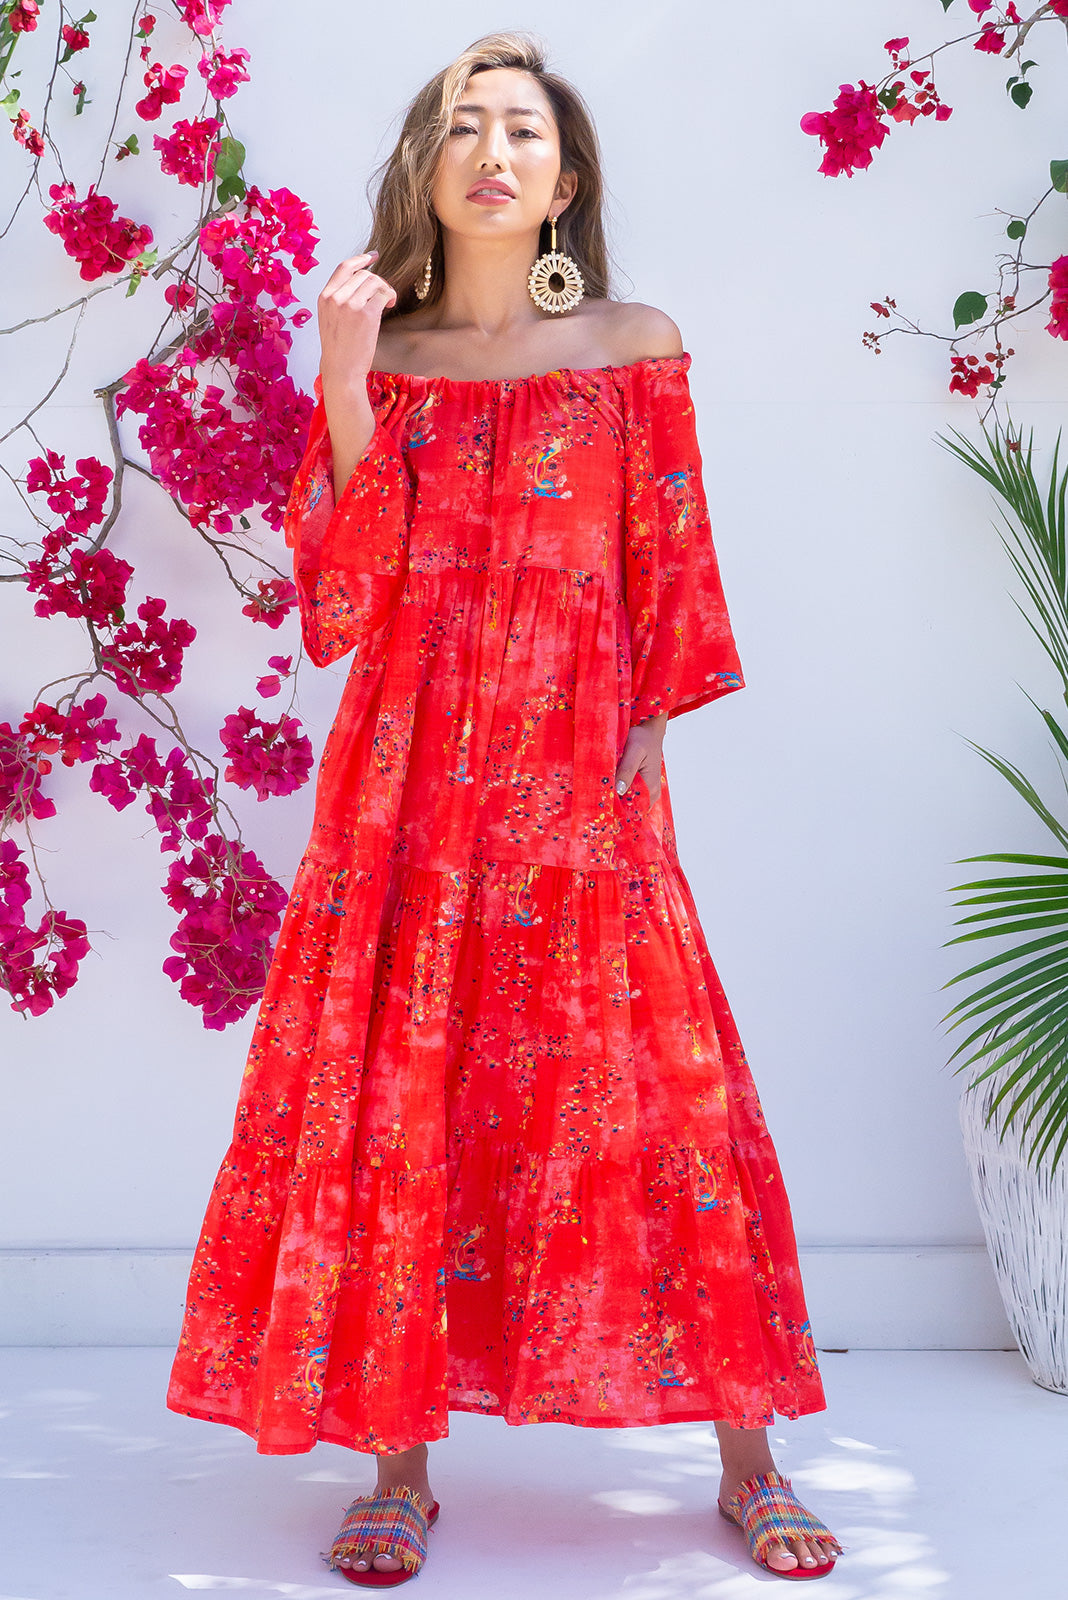 Lulu Liberty Sunset Red Maxi Spring Dress